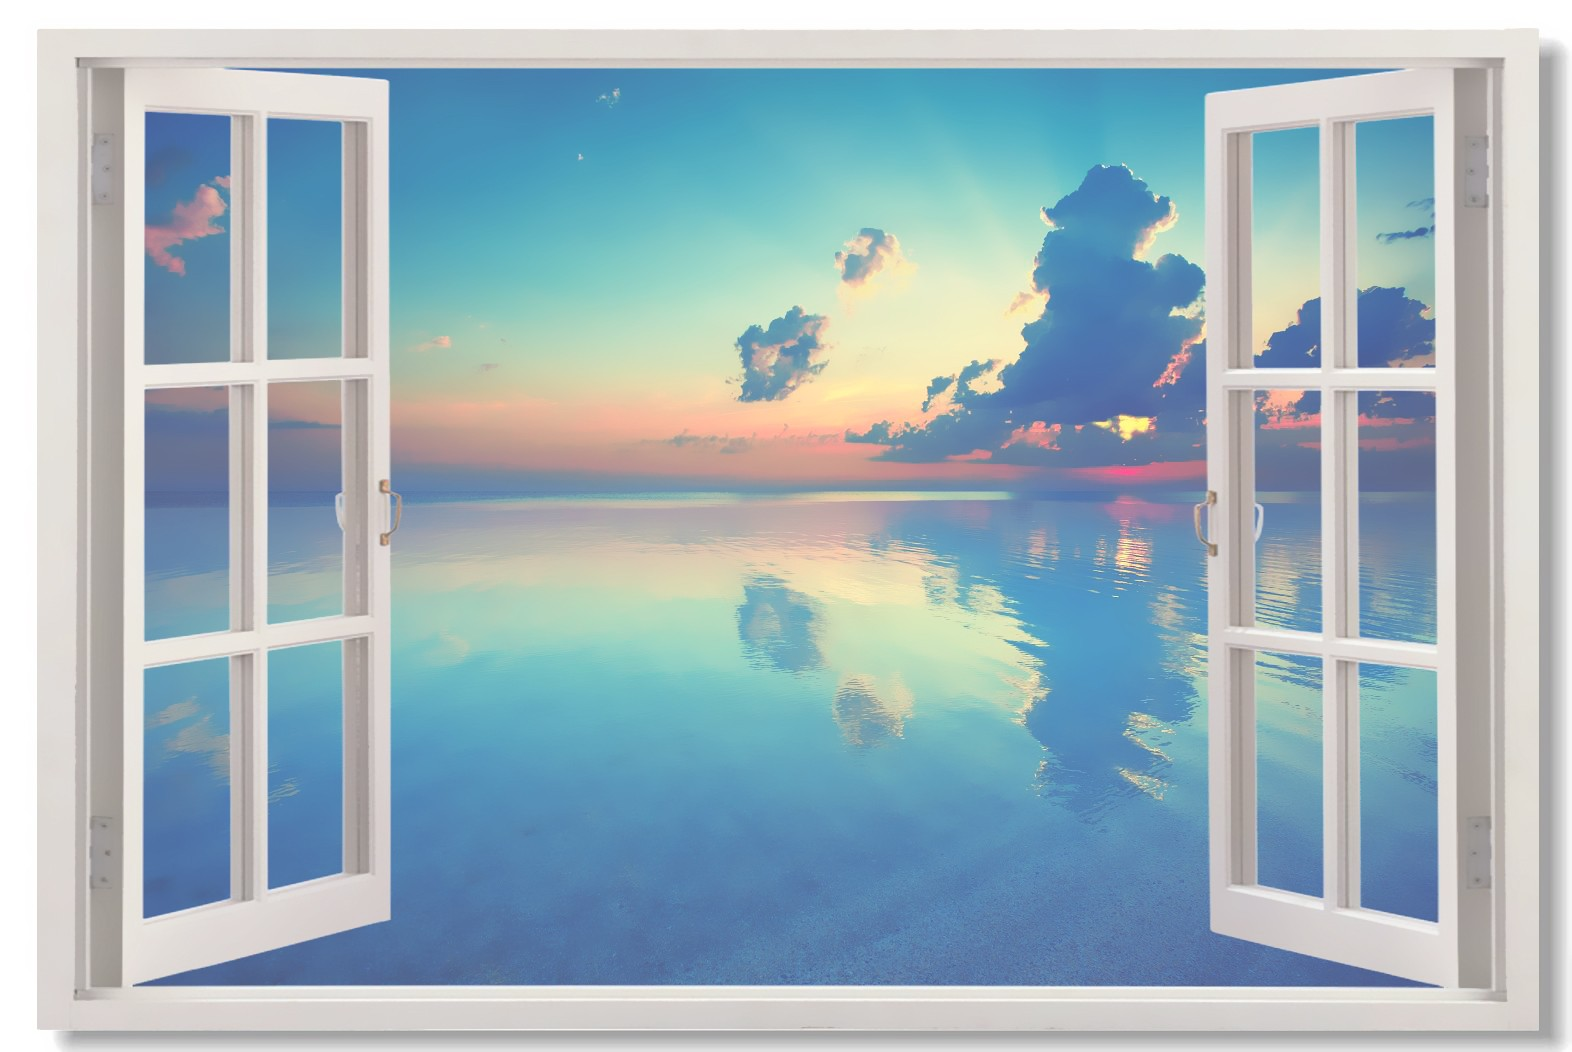 1572x1052 1x Poster Window View Sky Lake Sandy Beach Sea Coconut Tree Wall - Window View Painting